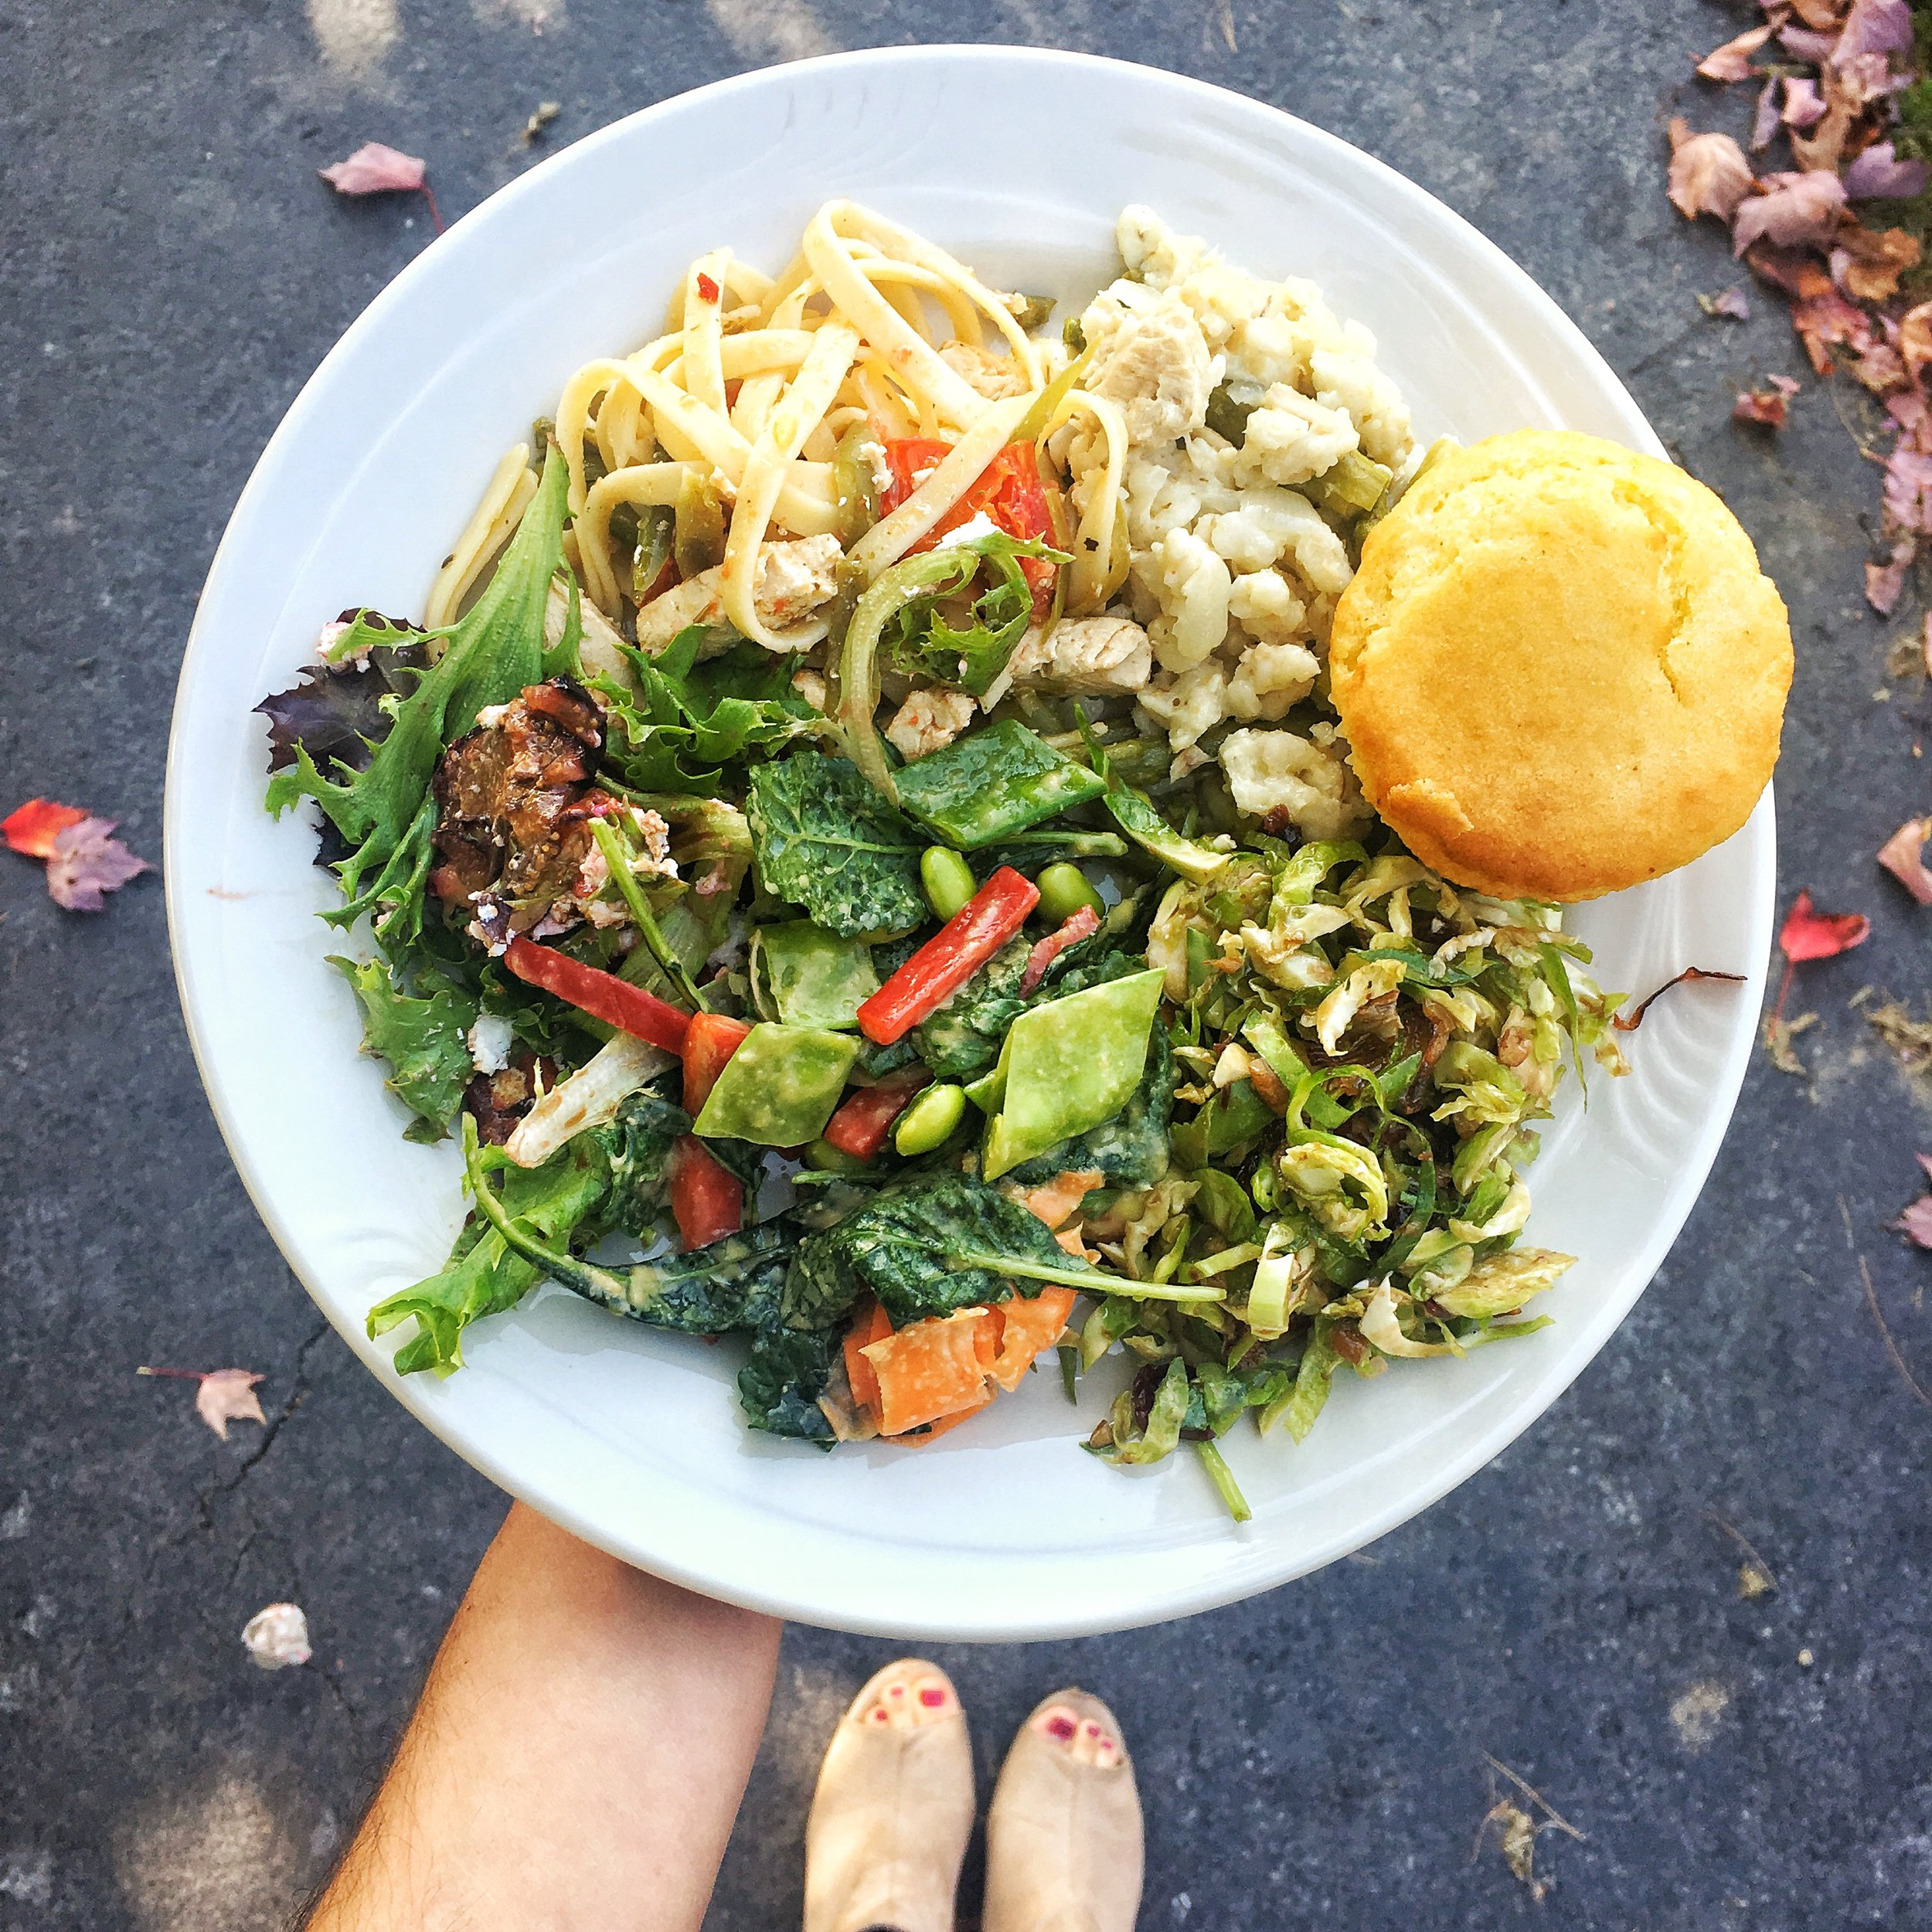 """Lemon linguine with MorningStar Farms """"chicken strips"""", tuna risotto, and three types of salad. The shaved Brussels sprouts salad with maple vinaigrette was obsession worthy."""